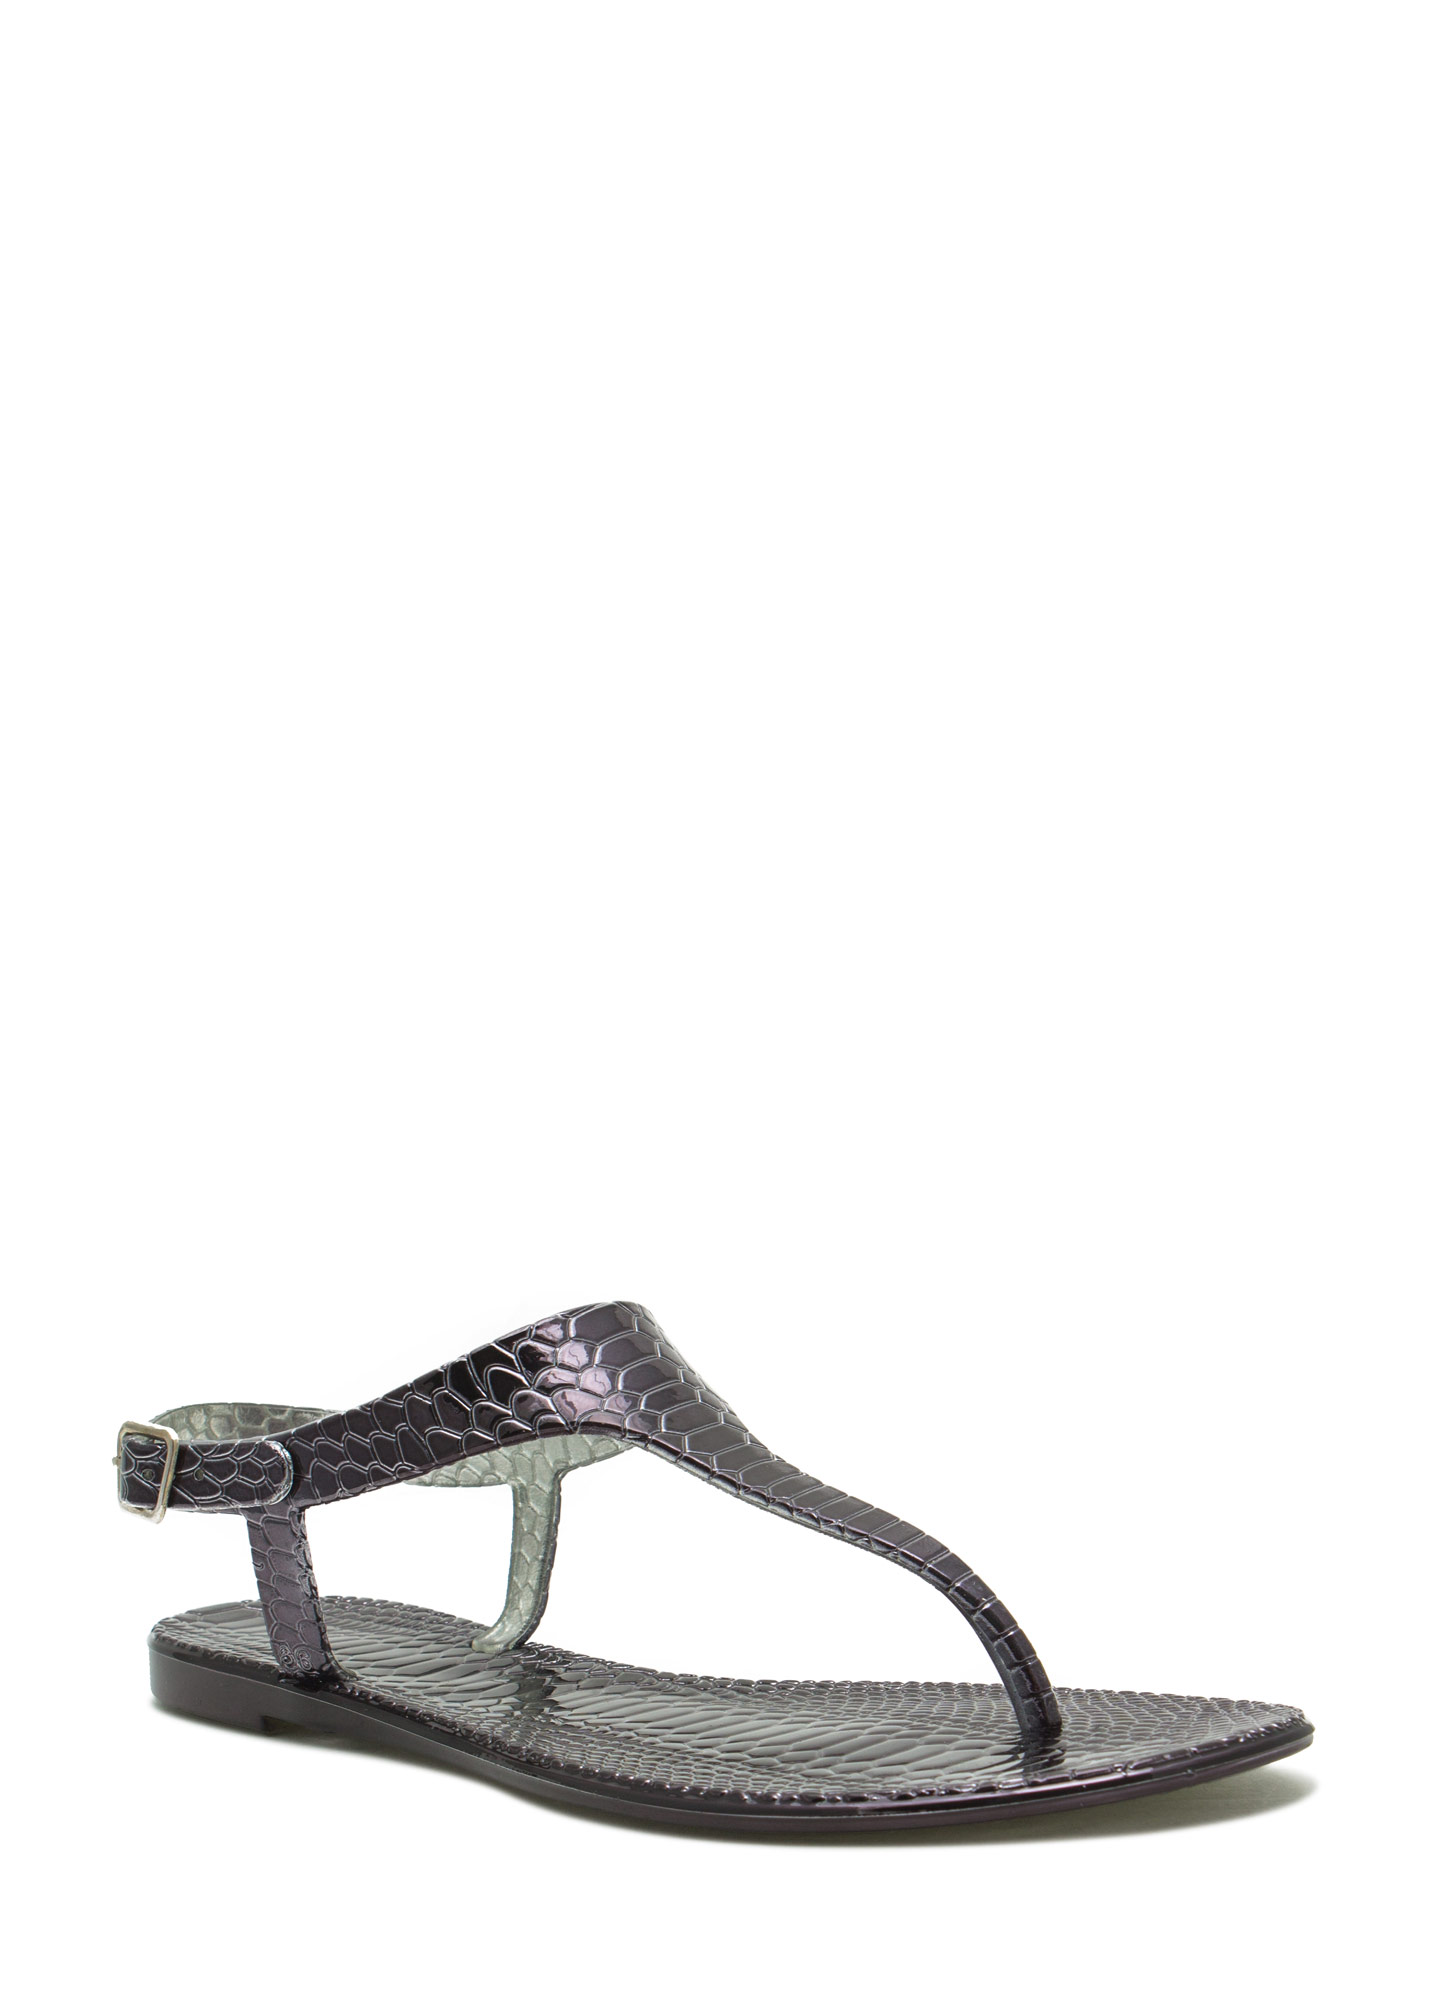 Reptile Textured Jelly Thong Sandals BLACK